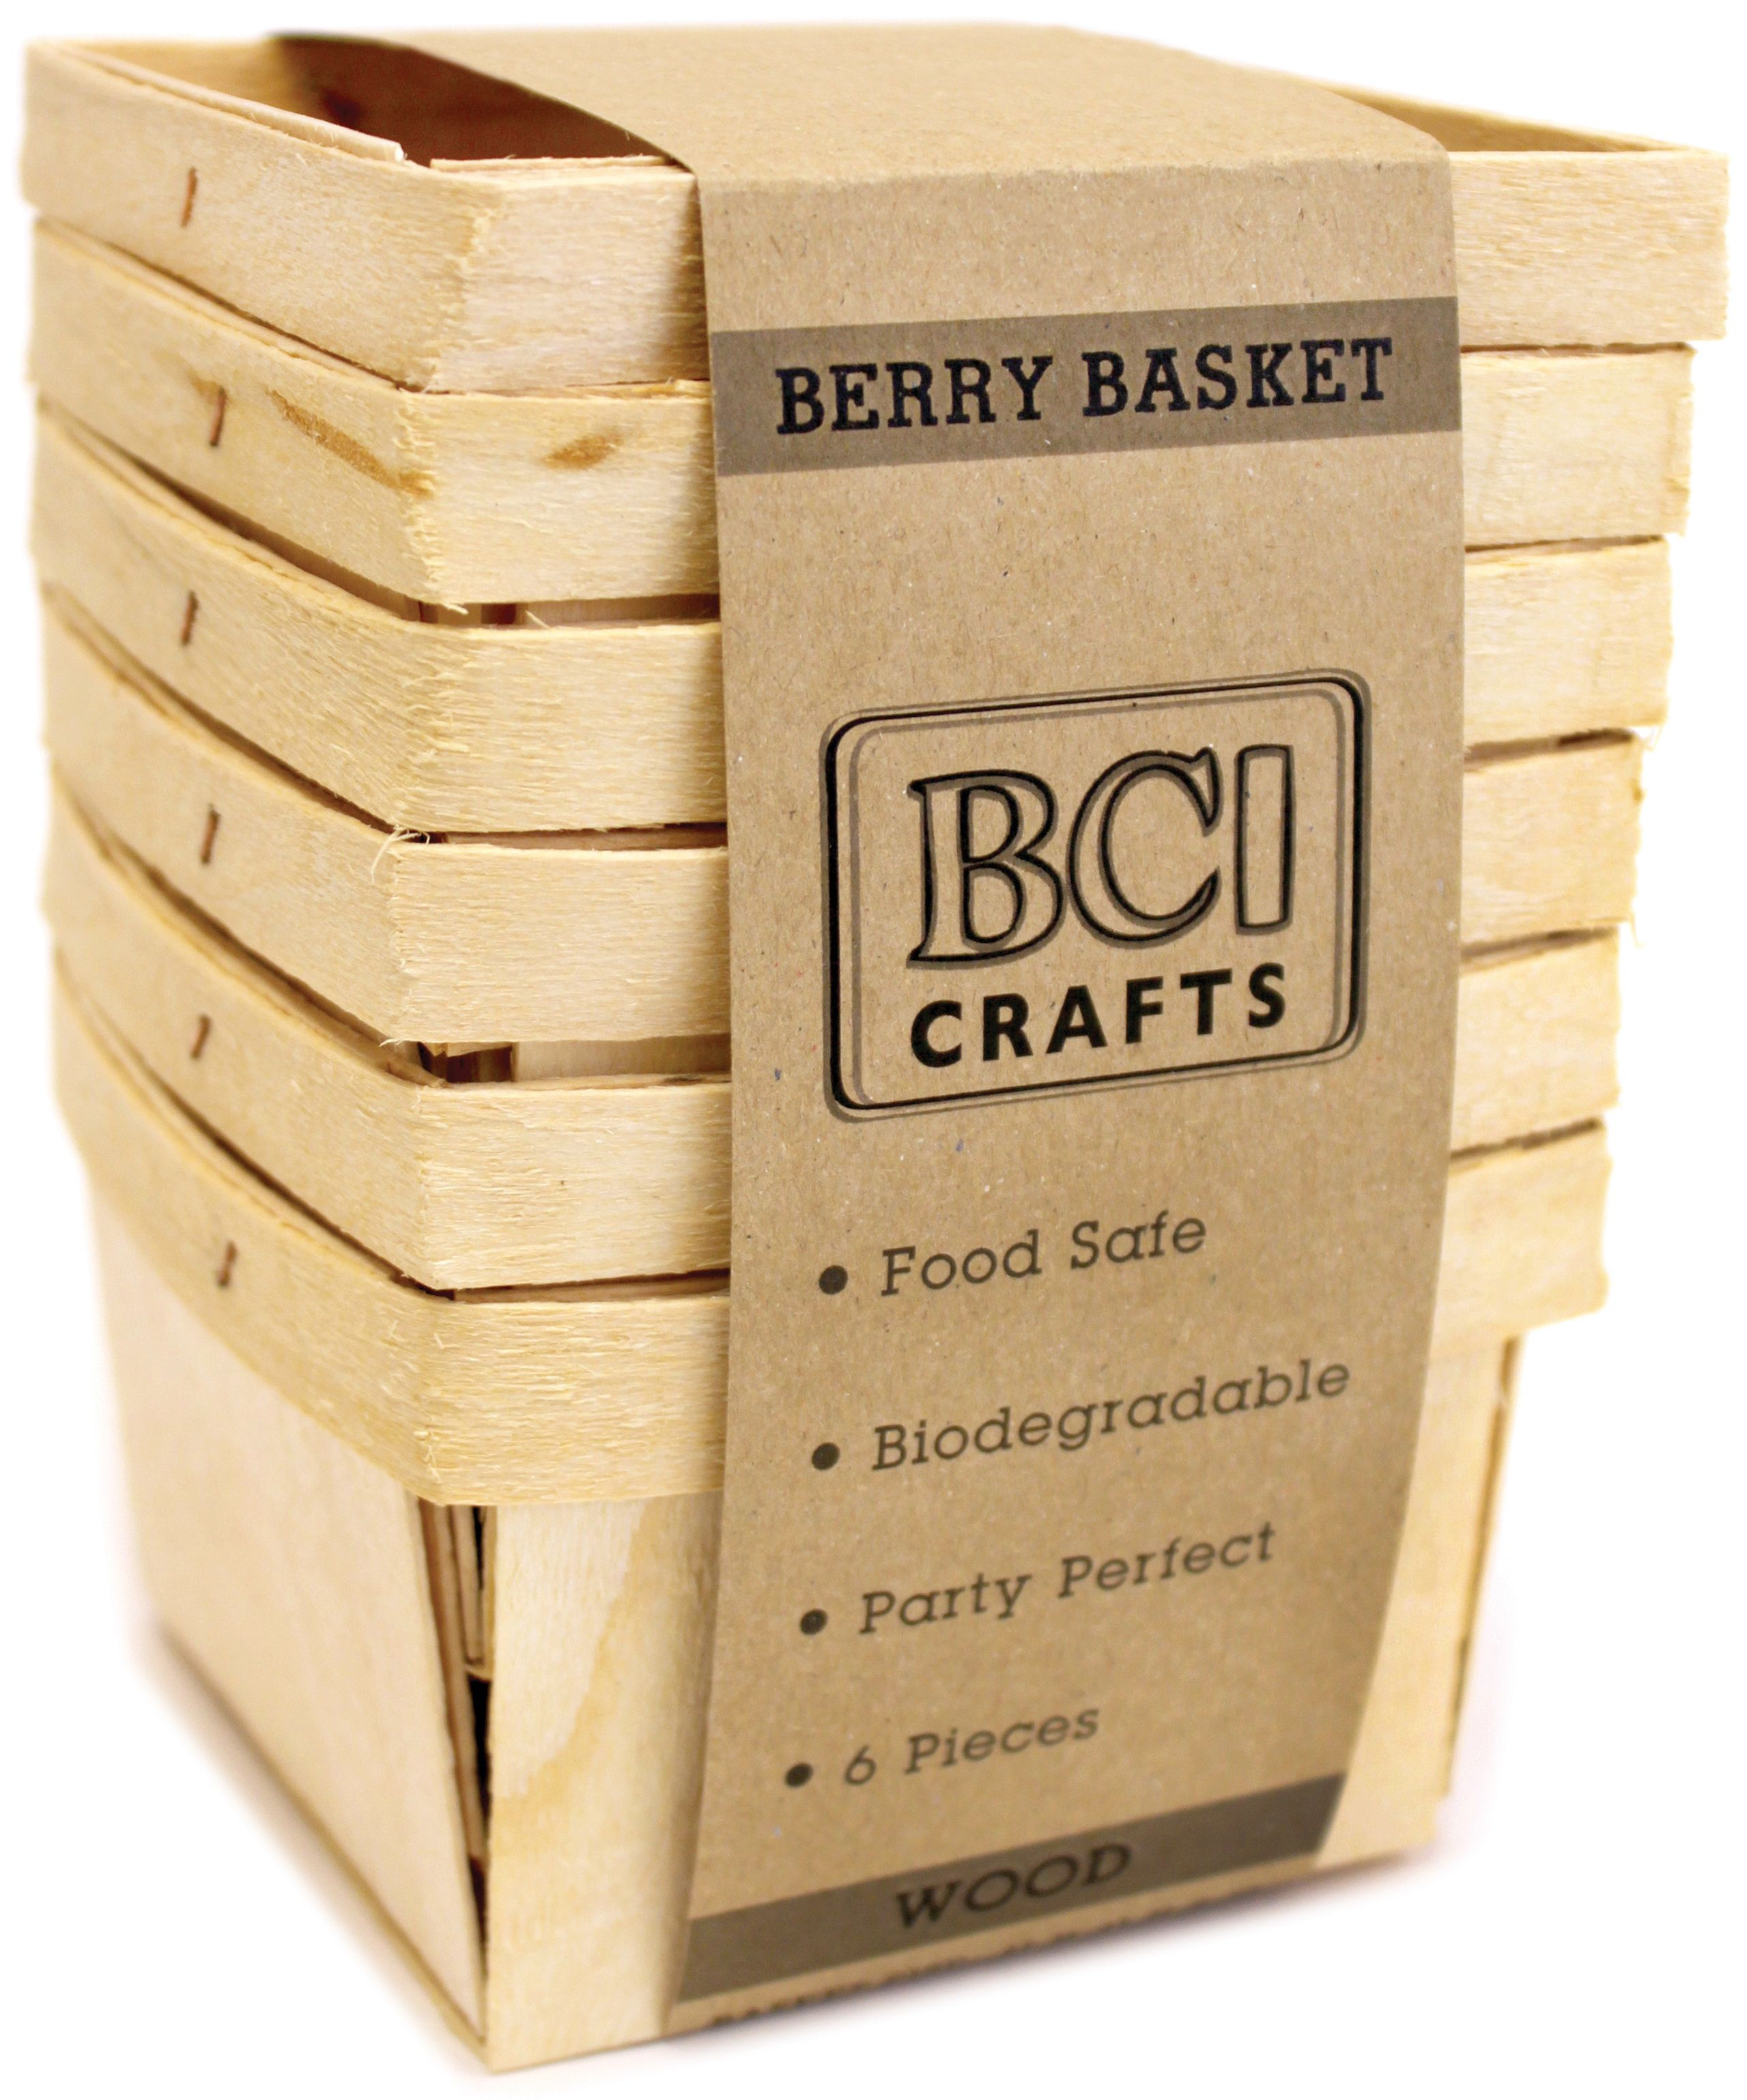 Darice Natural Paper Berry Basket 6 Piece